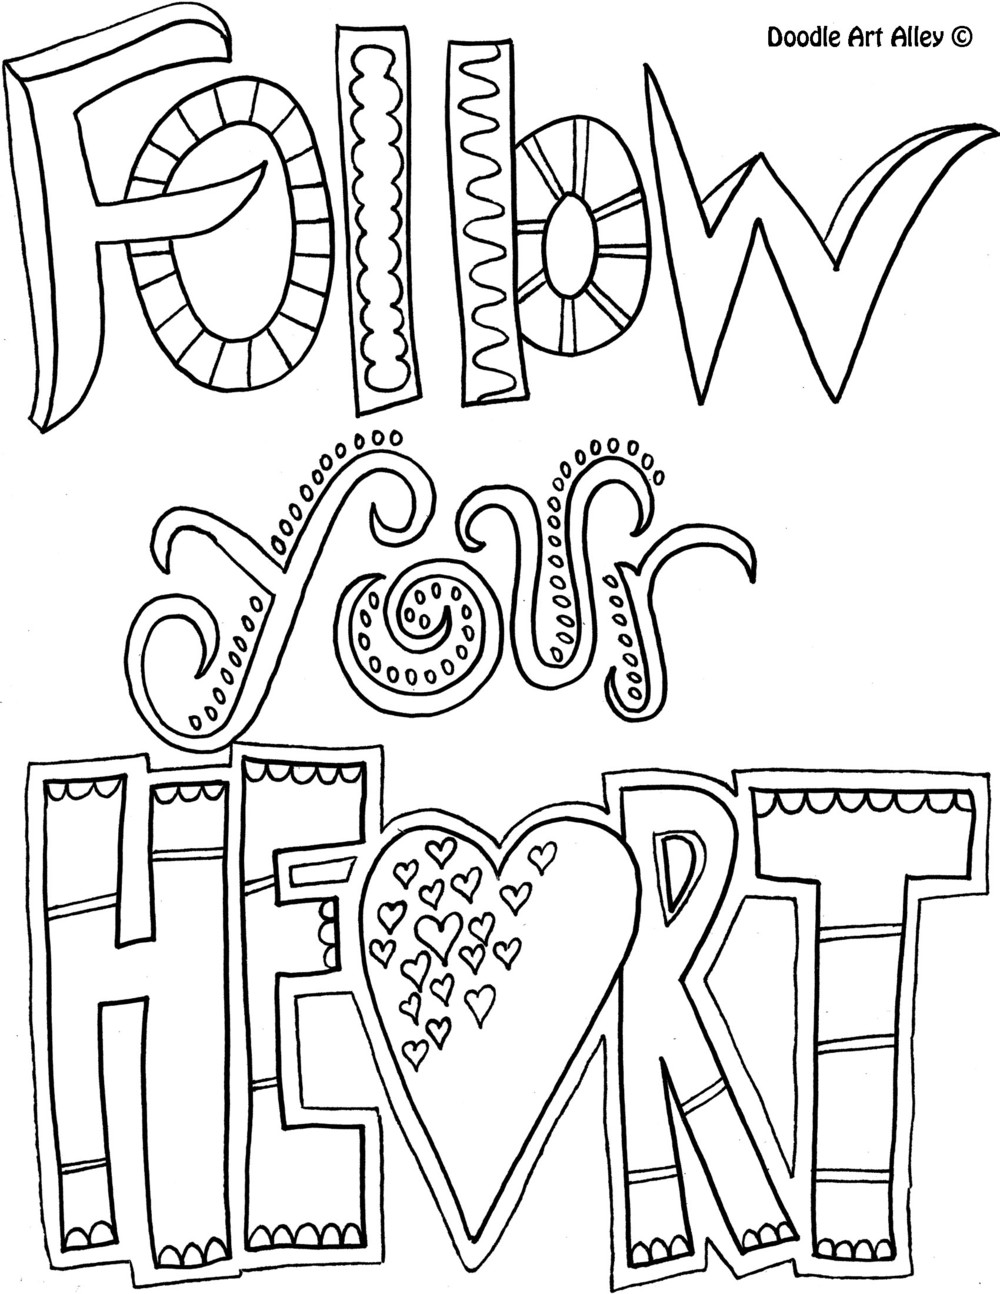 Inspirational Quotes Coloring Pages For Adults : Become a coloring book enthusiast with doodle art alley